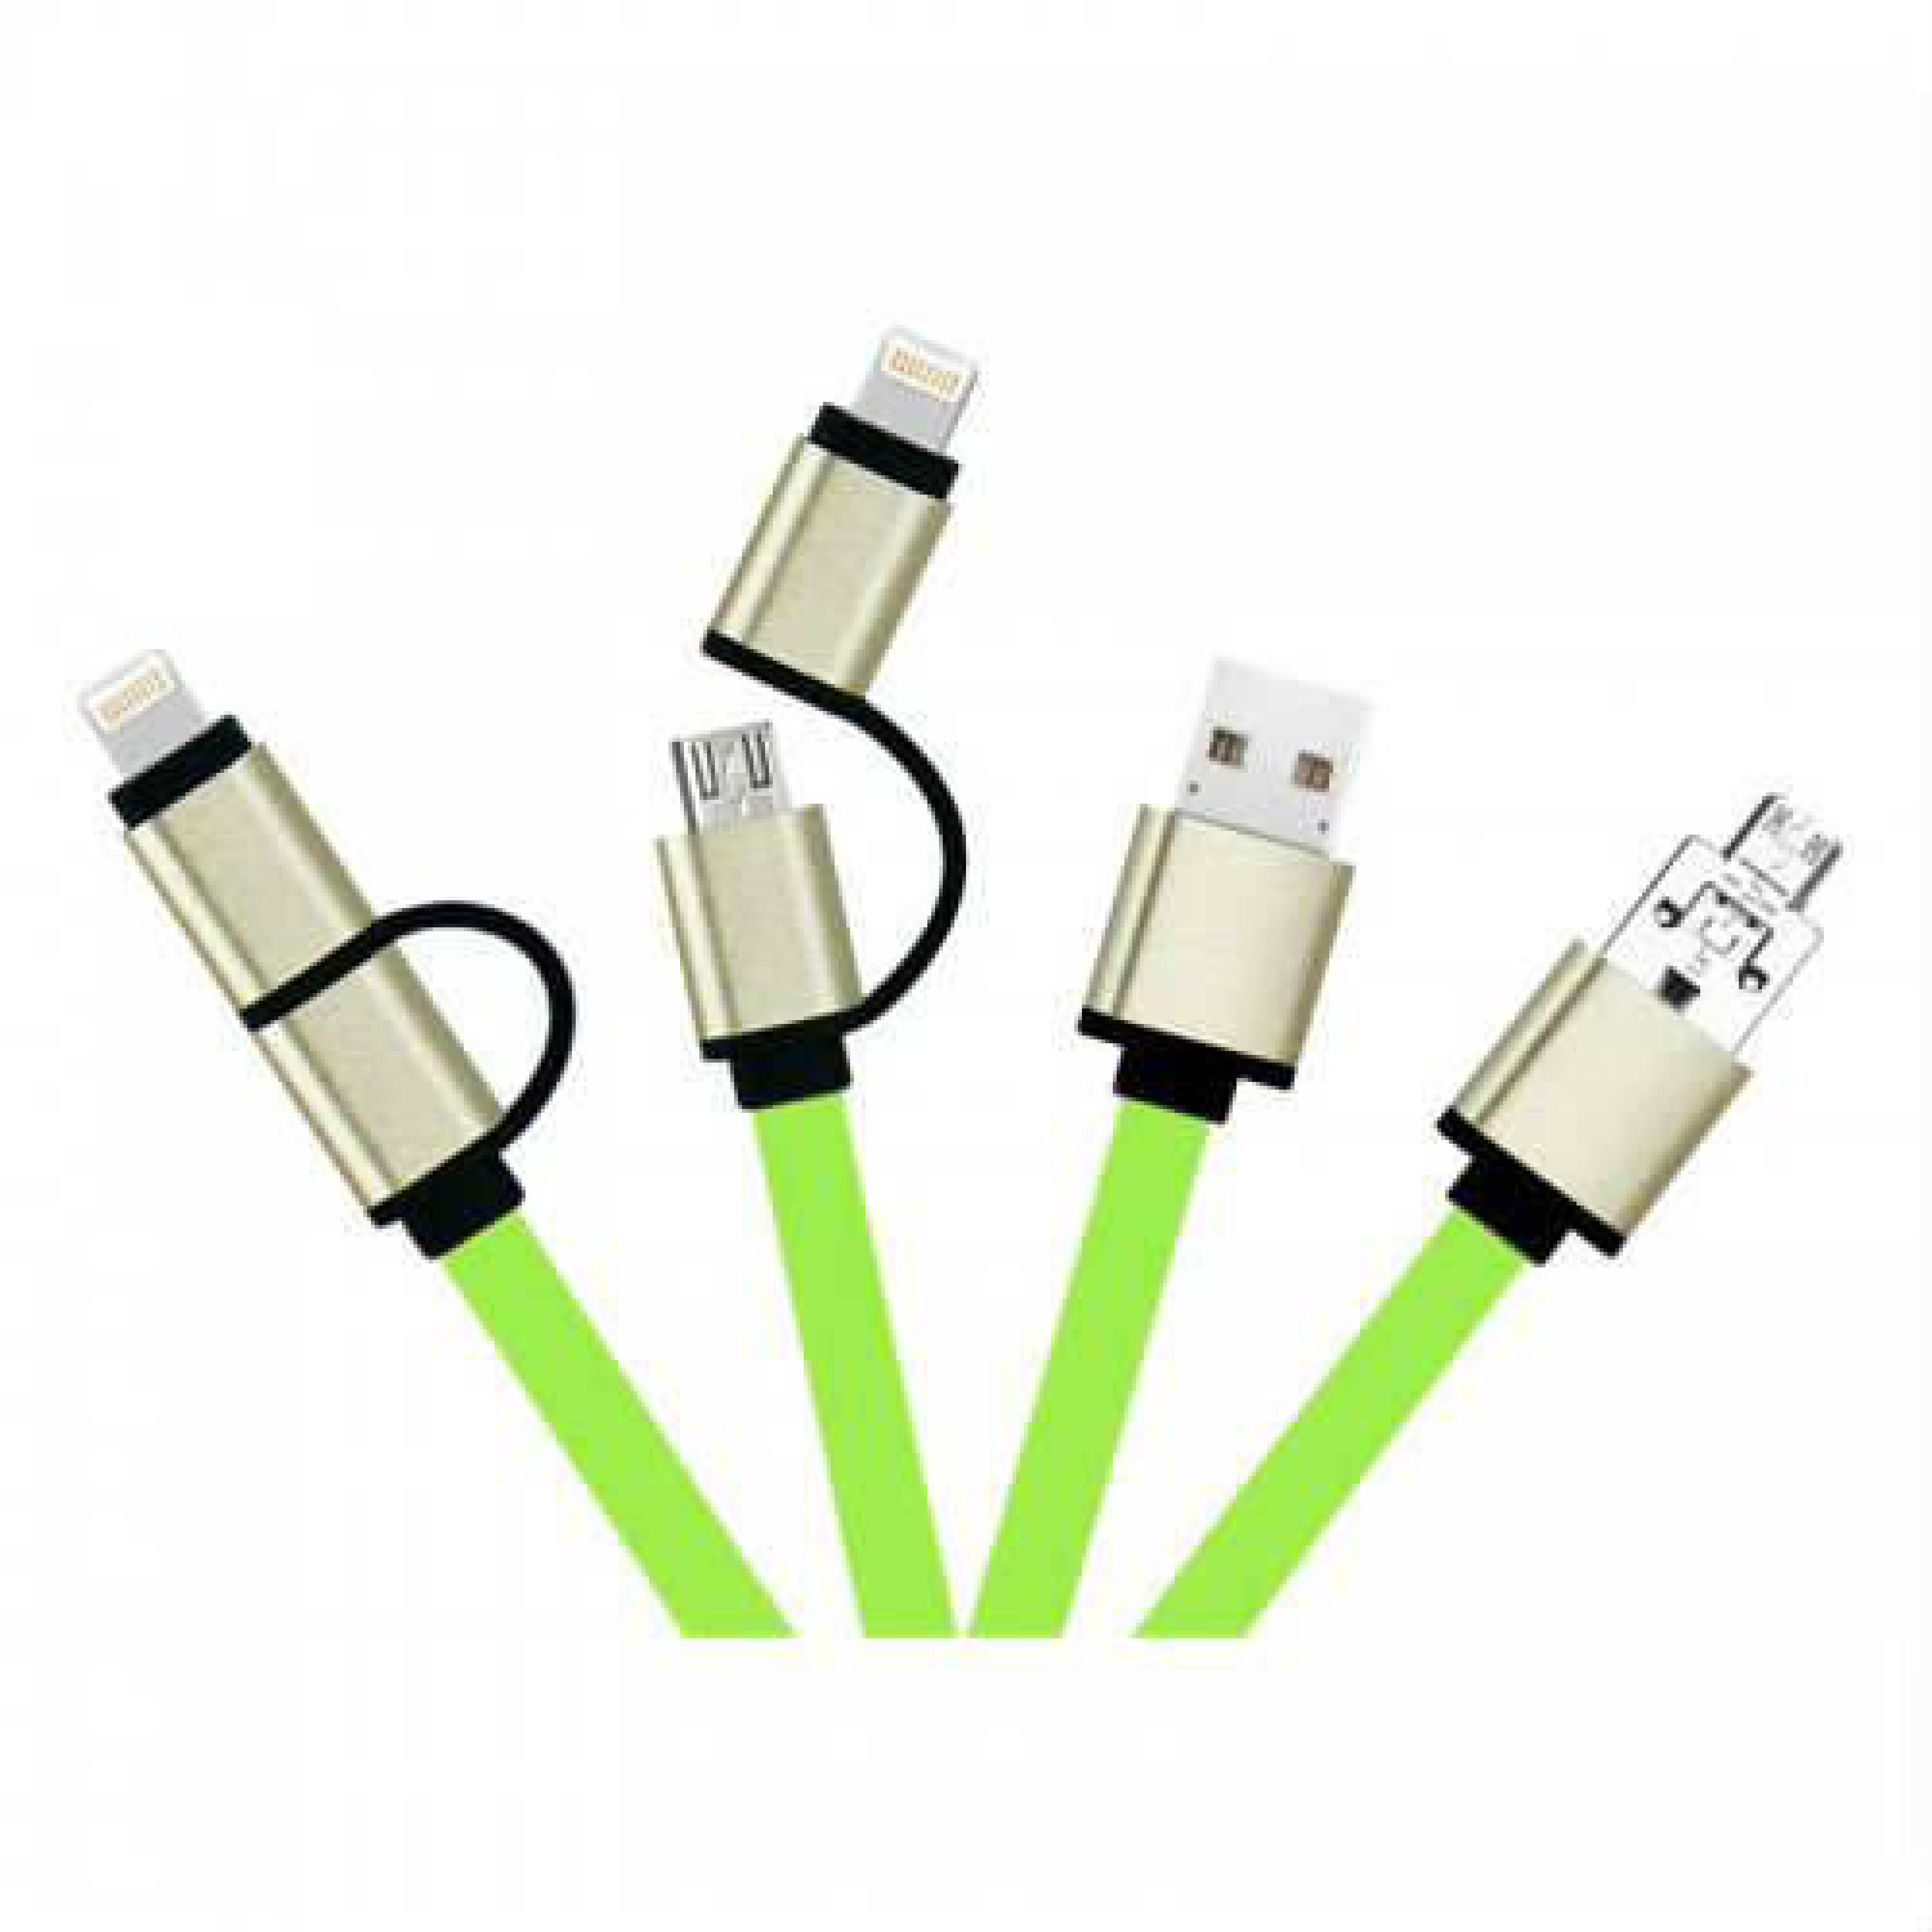 2 in 1 iPhone Lightning + Android Micro USB Şarj ve Data Kablosu